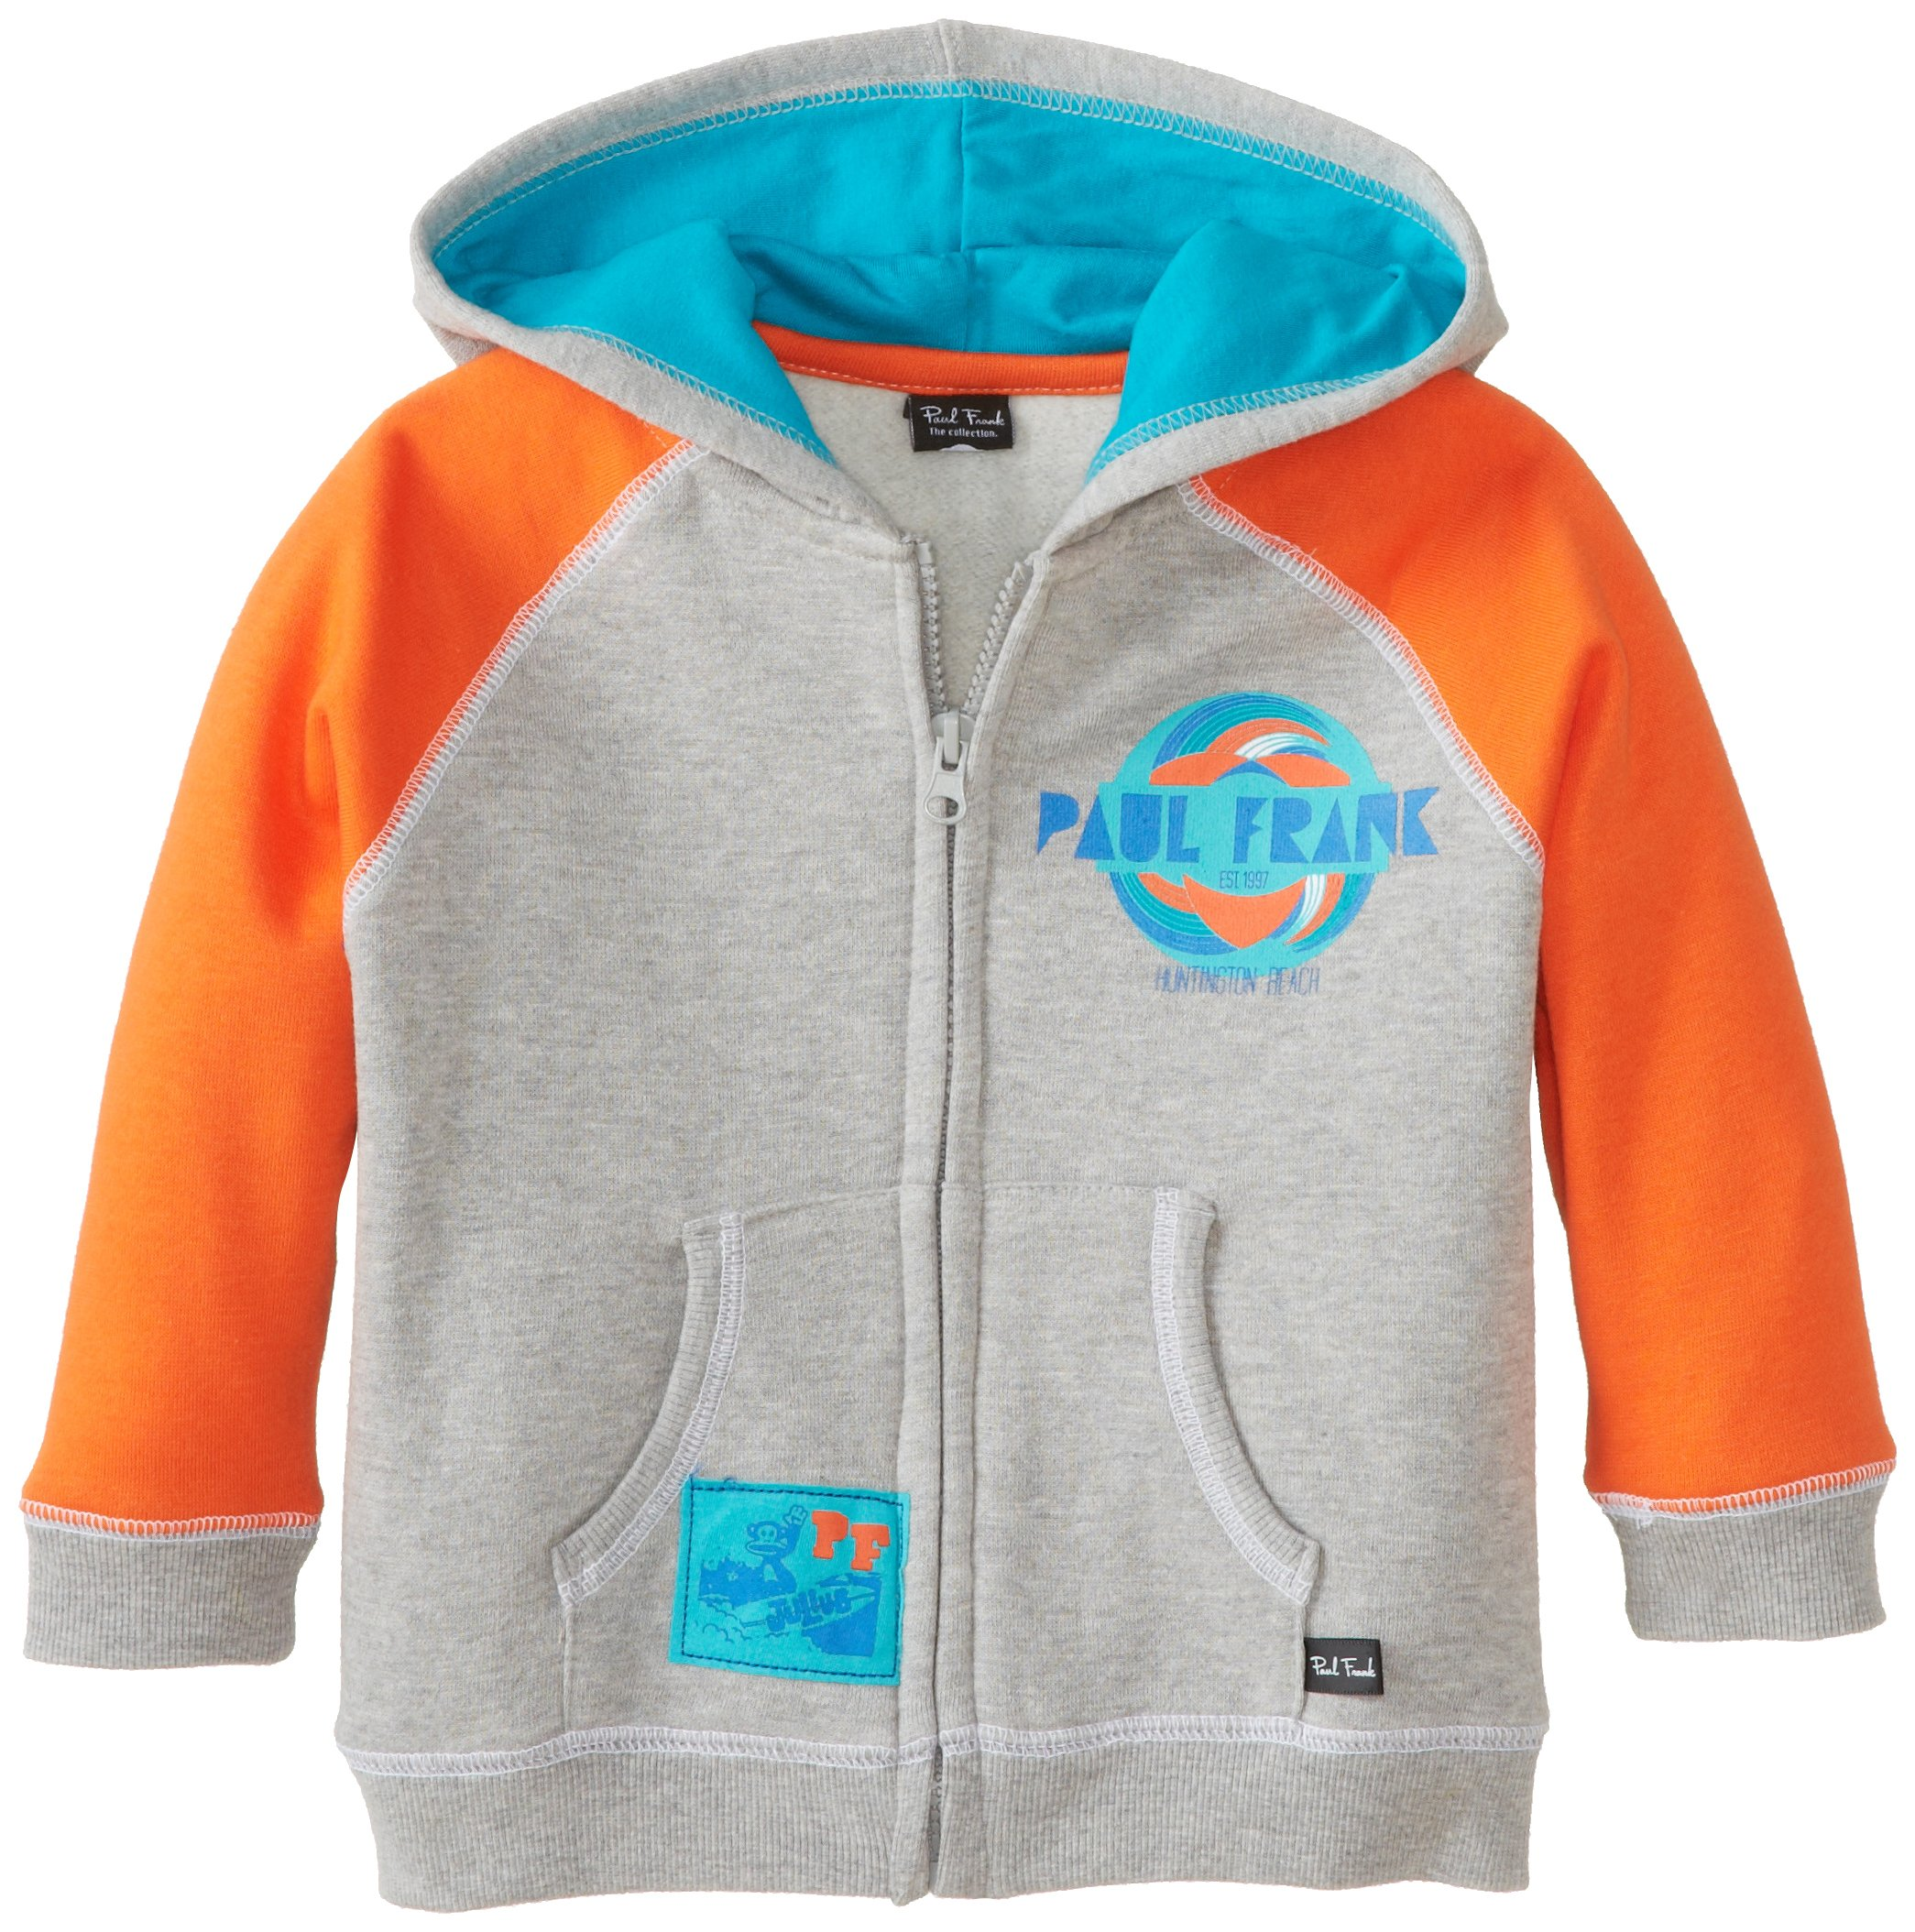 Paul Frank Little Boys' Toddler Surf Hoodie, Grey Heather, 3T